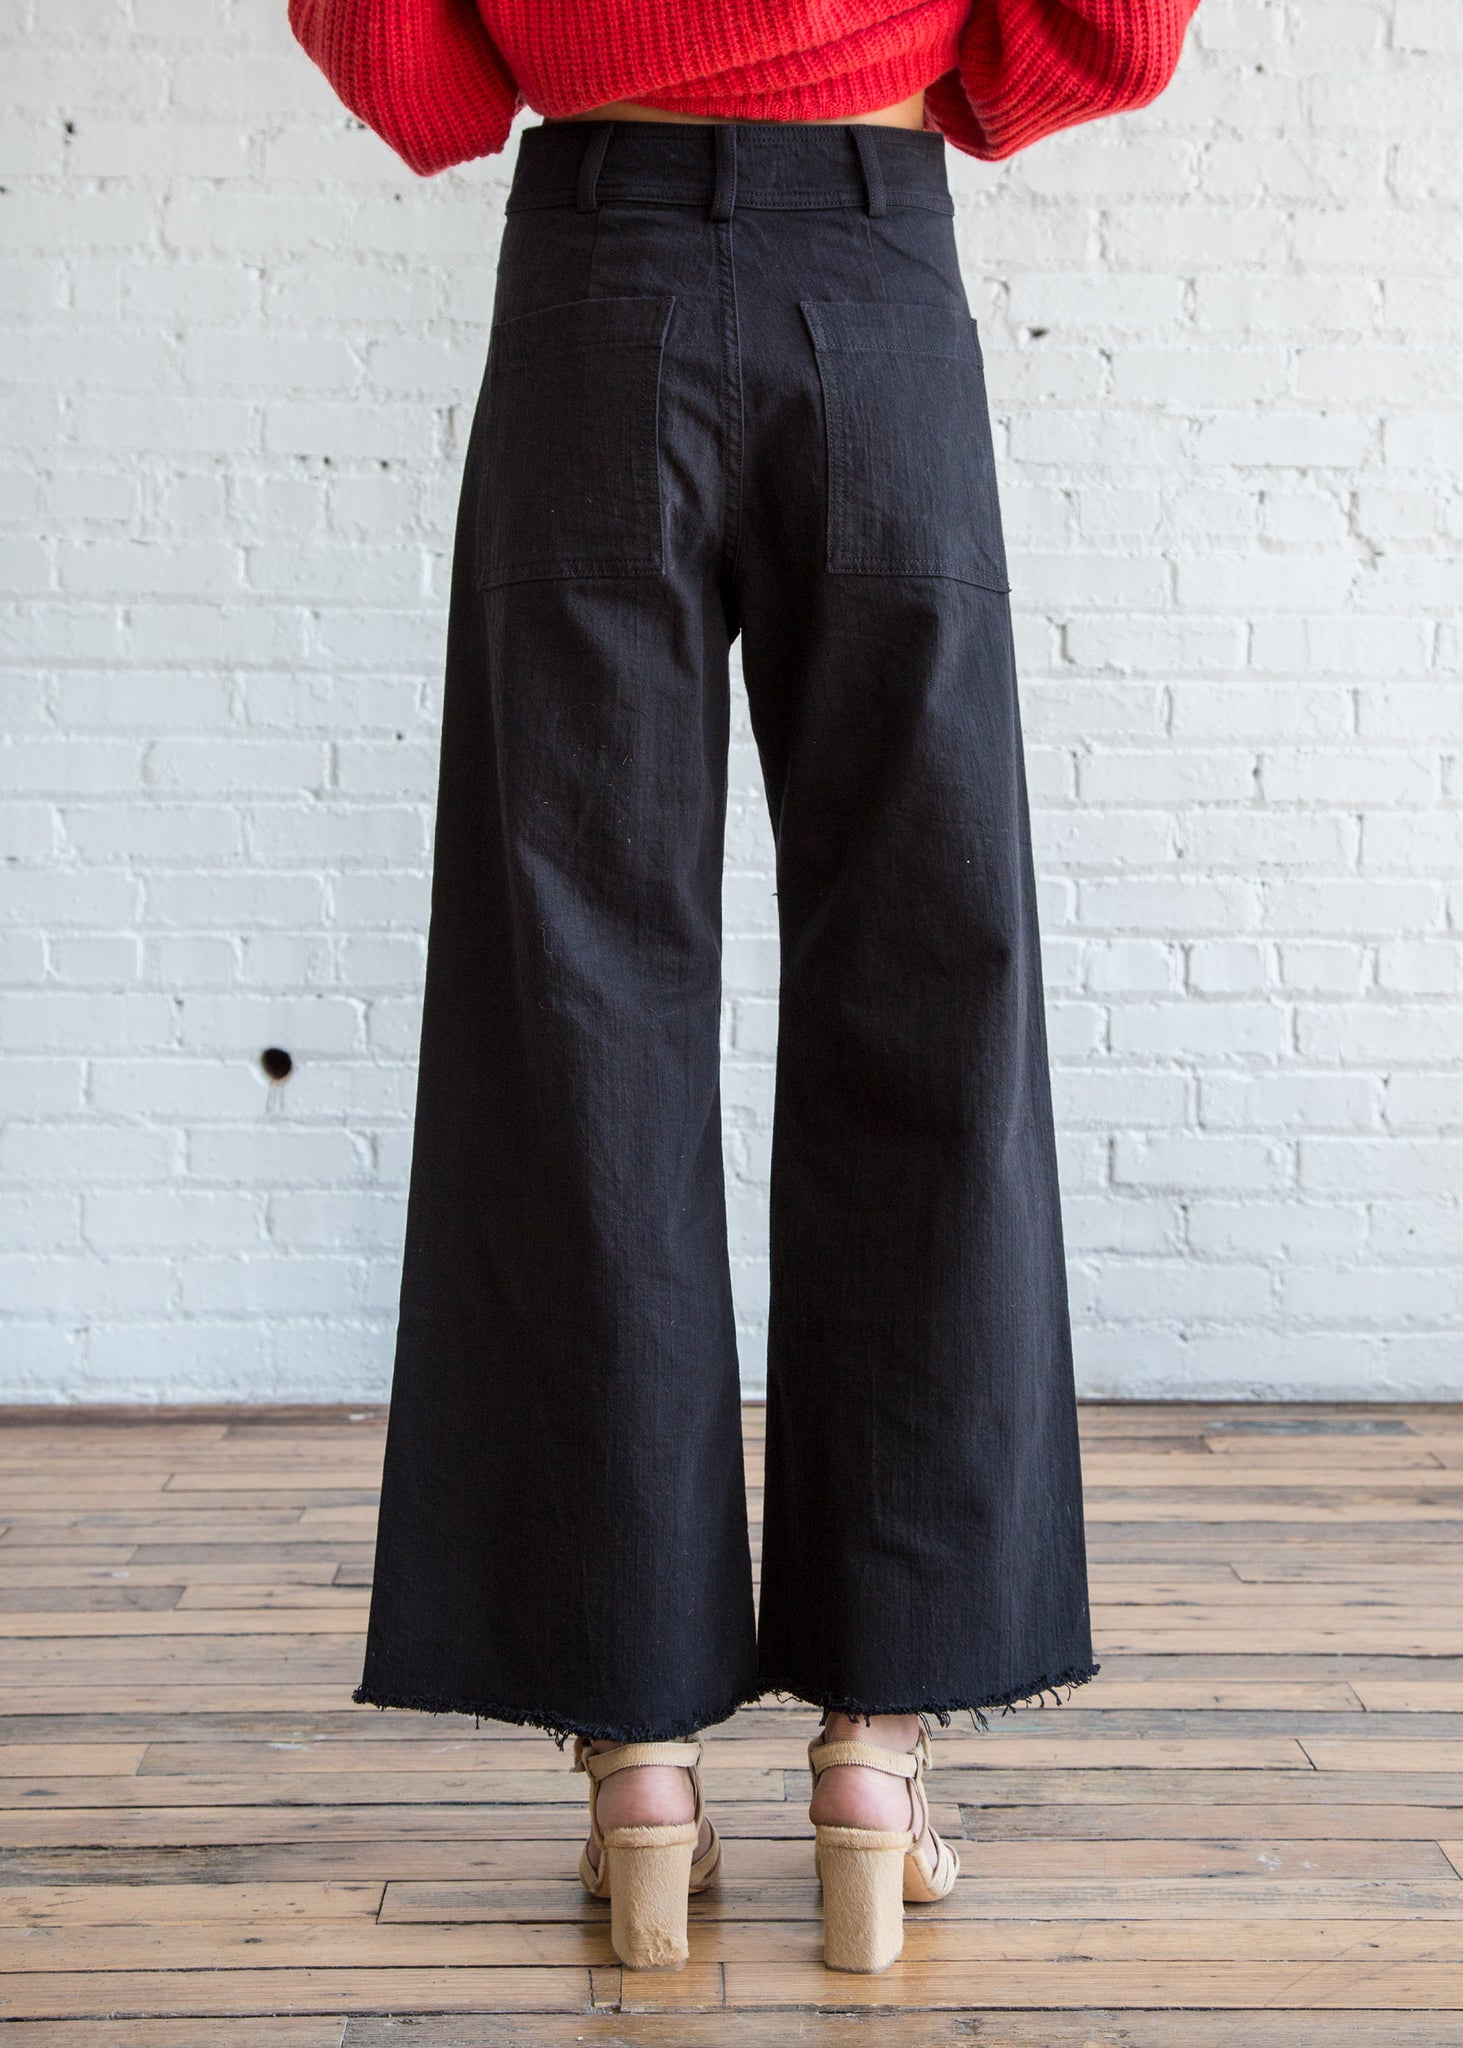 Creatures of Comfort Maison Denim Black - SOLD OUT